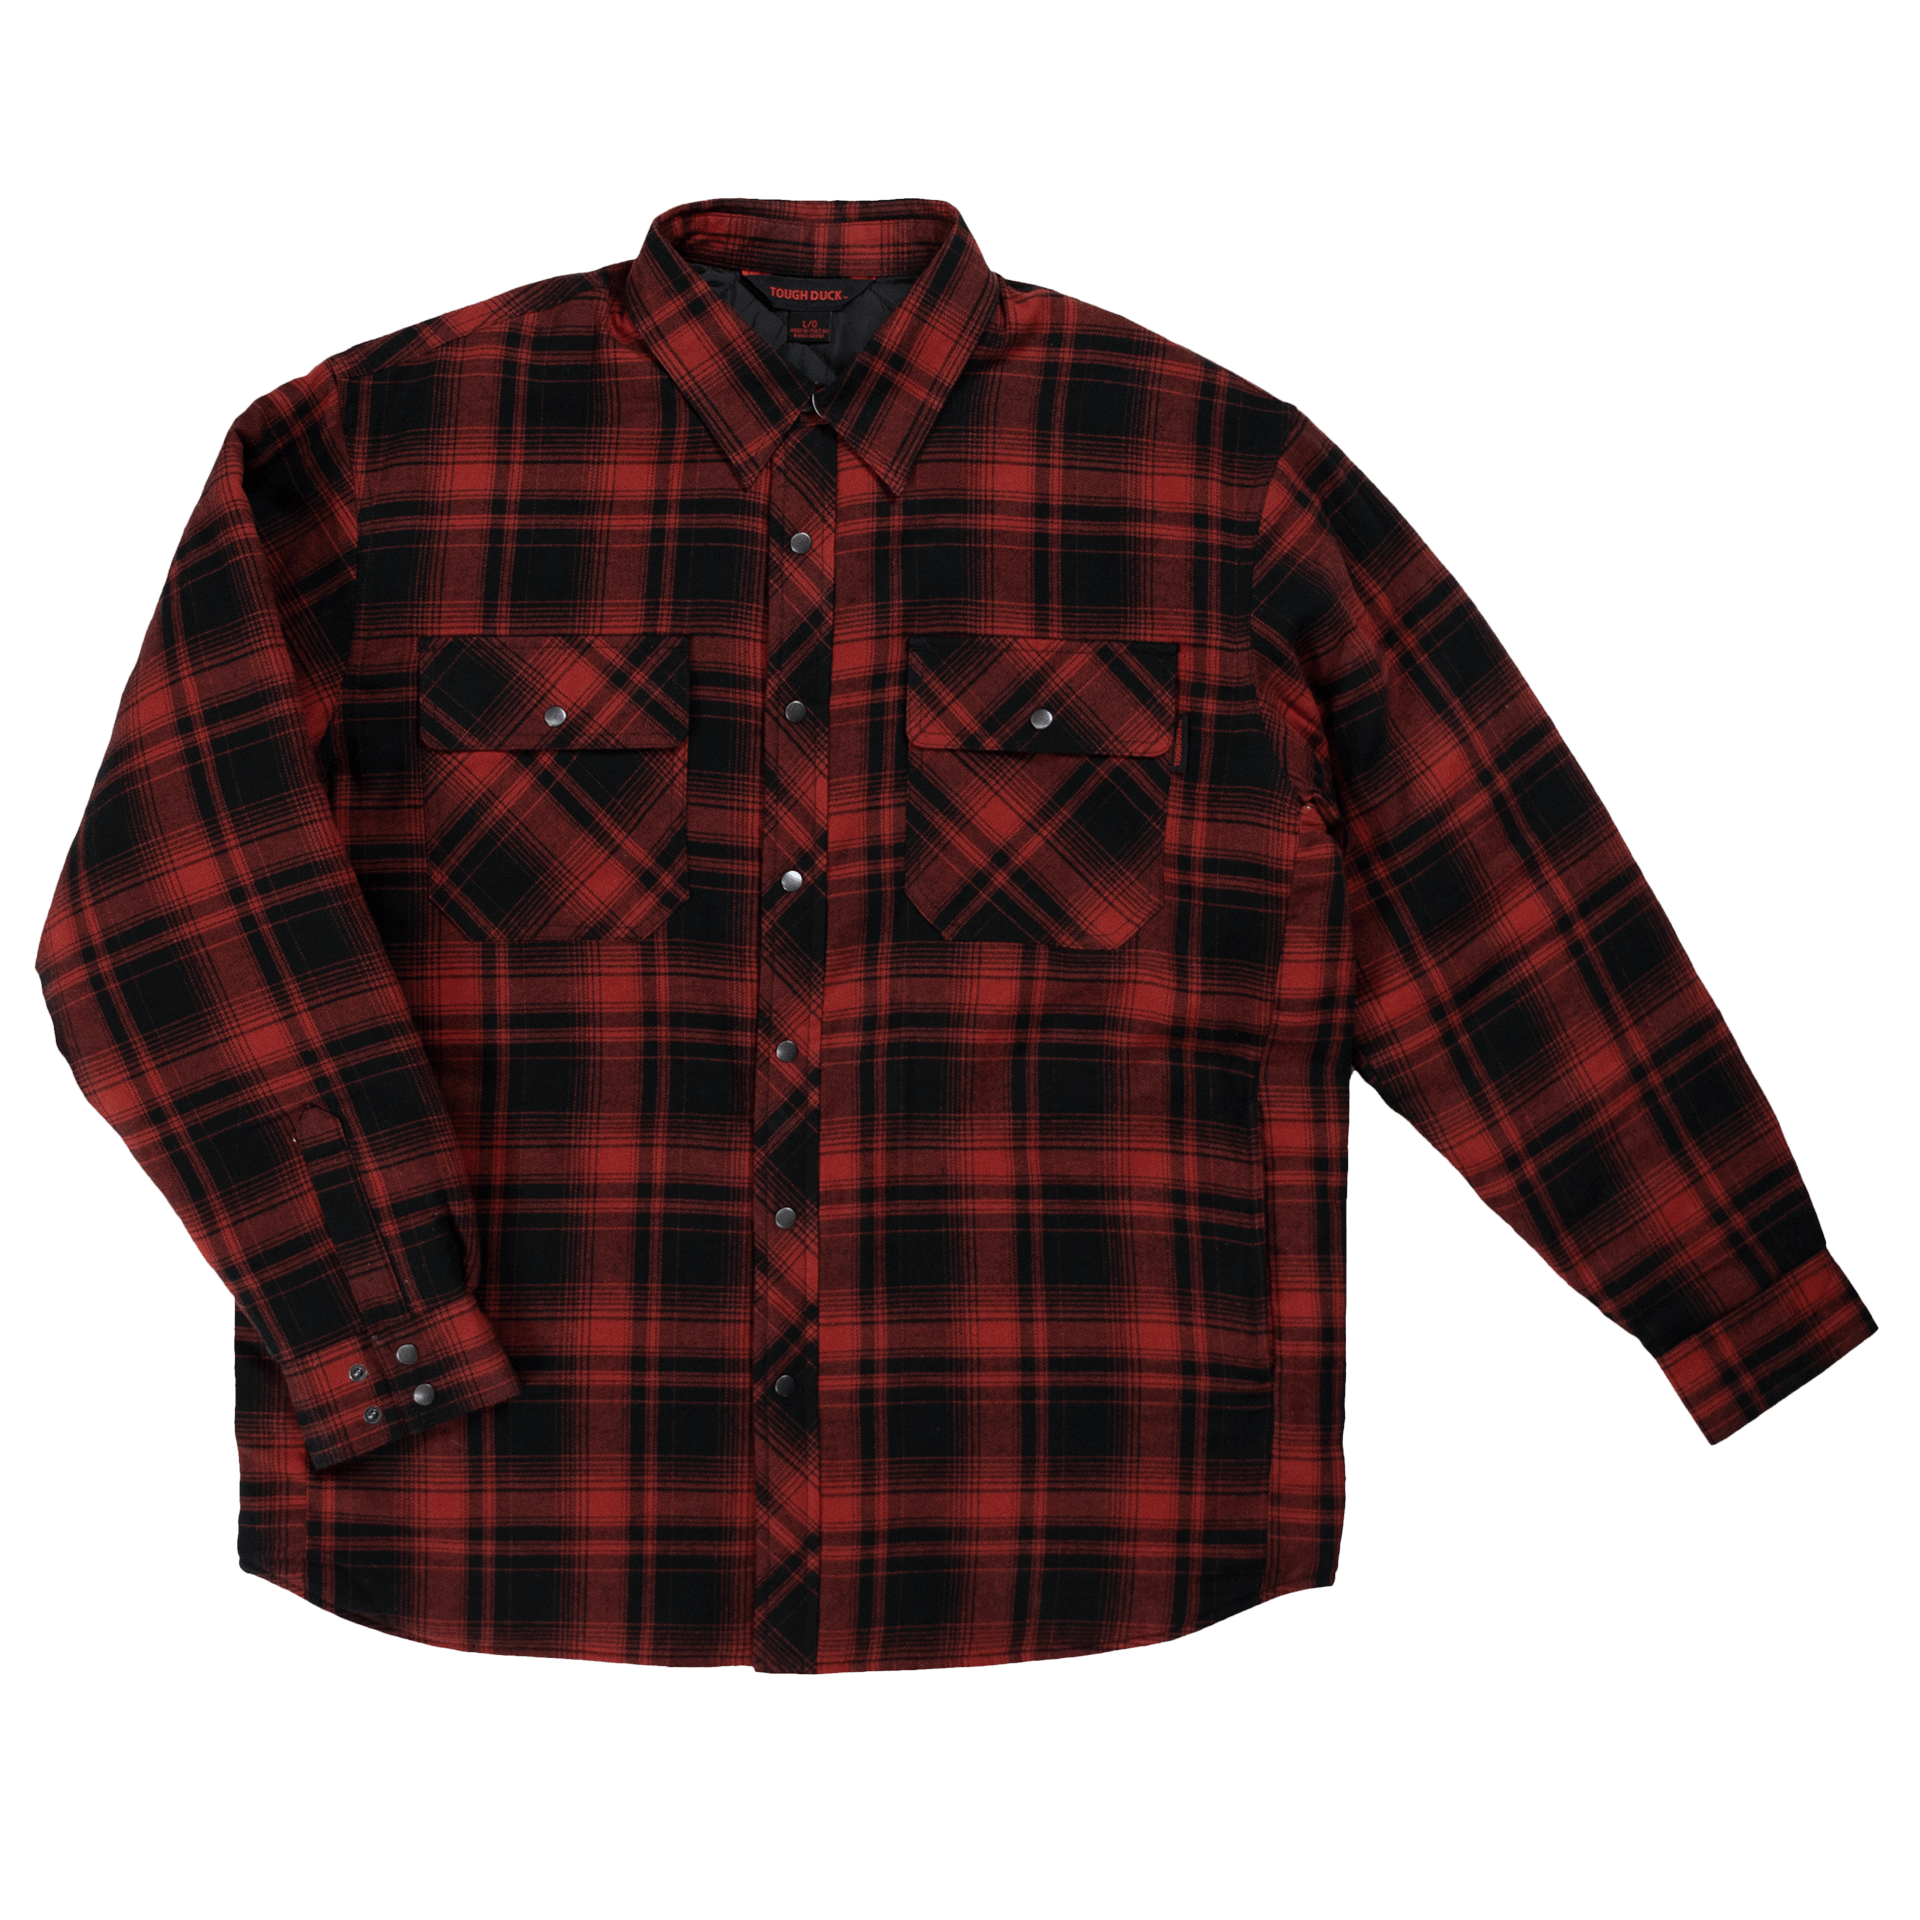 WS05-REDP-F-Tough-Duck-Mens-Quilt-Lined-Flannel-Shirt-Red-Plaid-Front